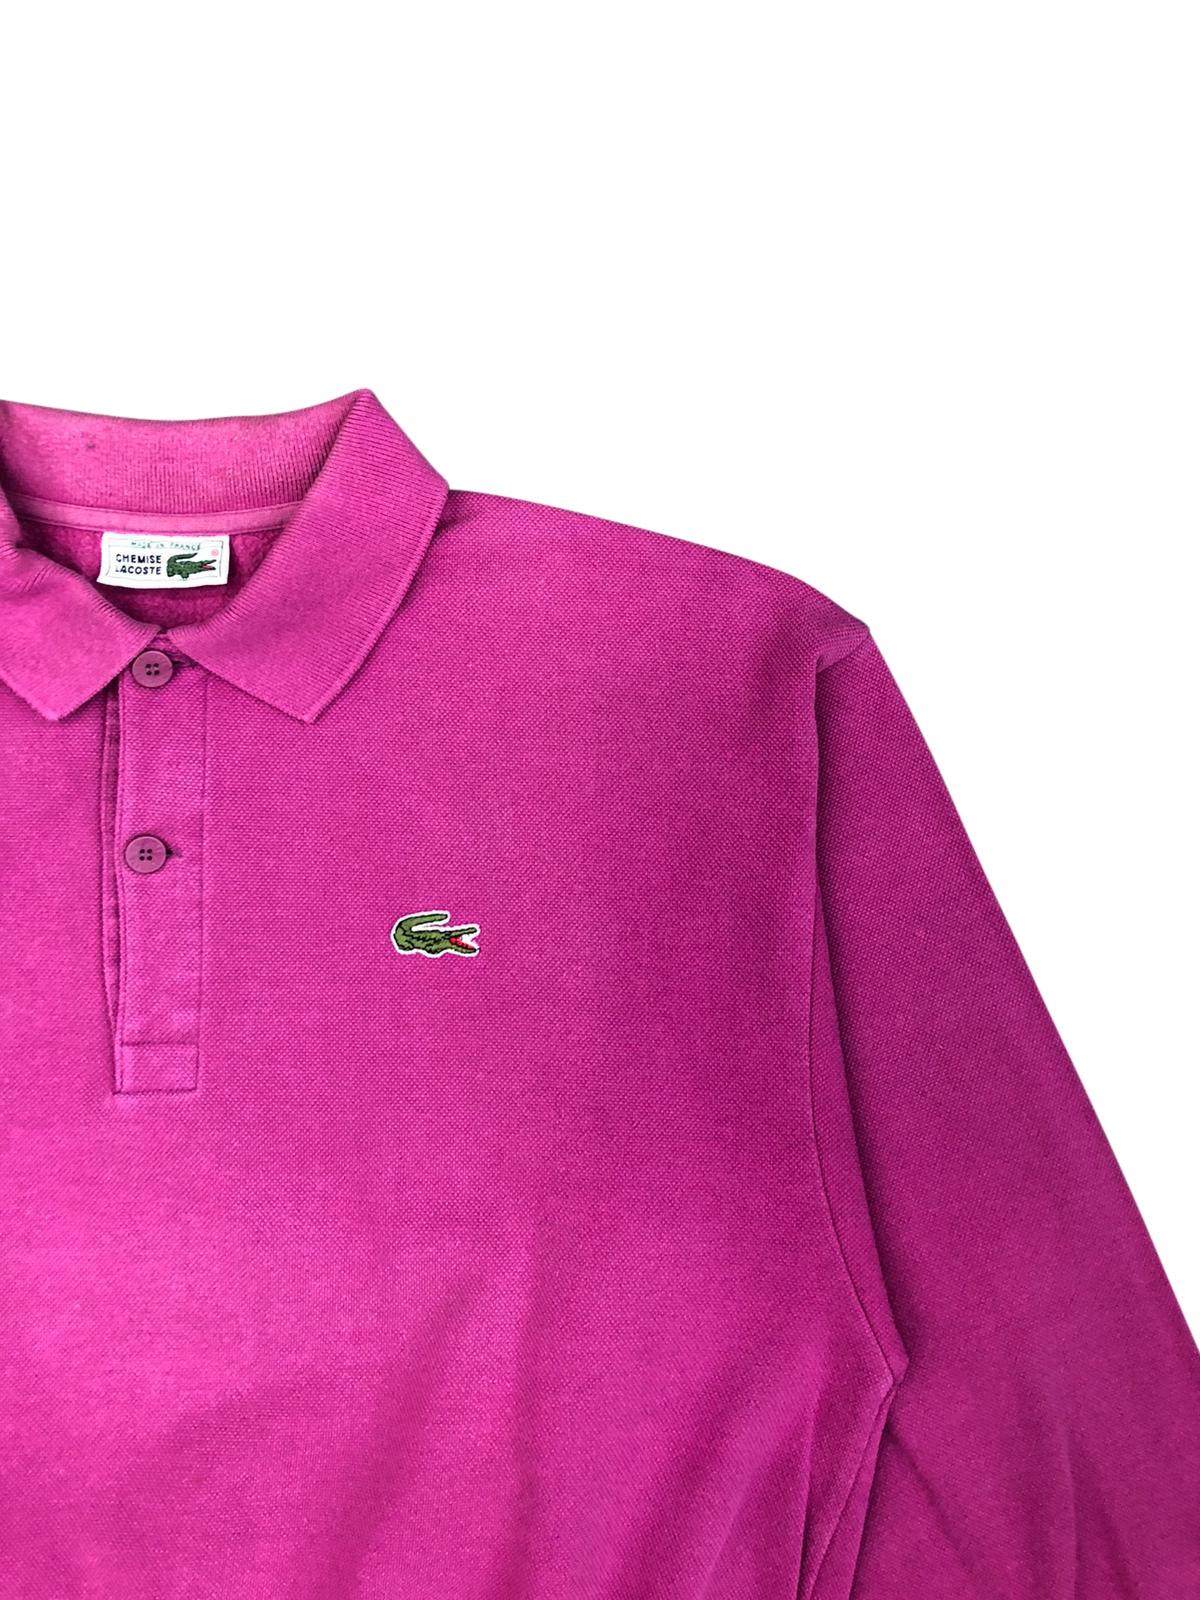 Lacoste Long Sleeve Polo Shirt (Dark Pink) UK 10-12